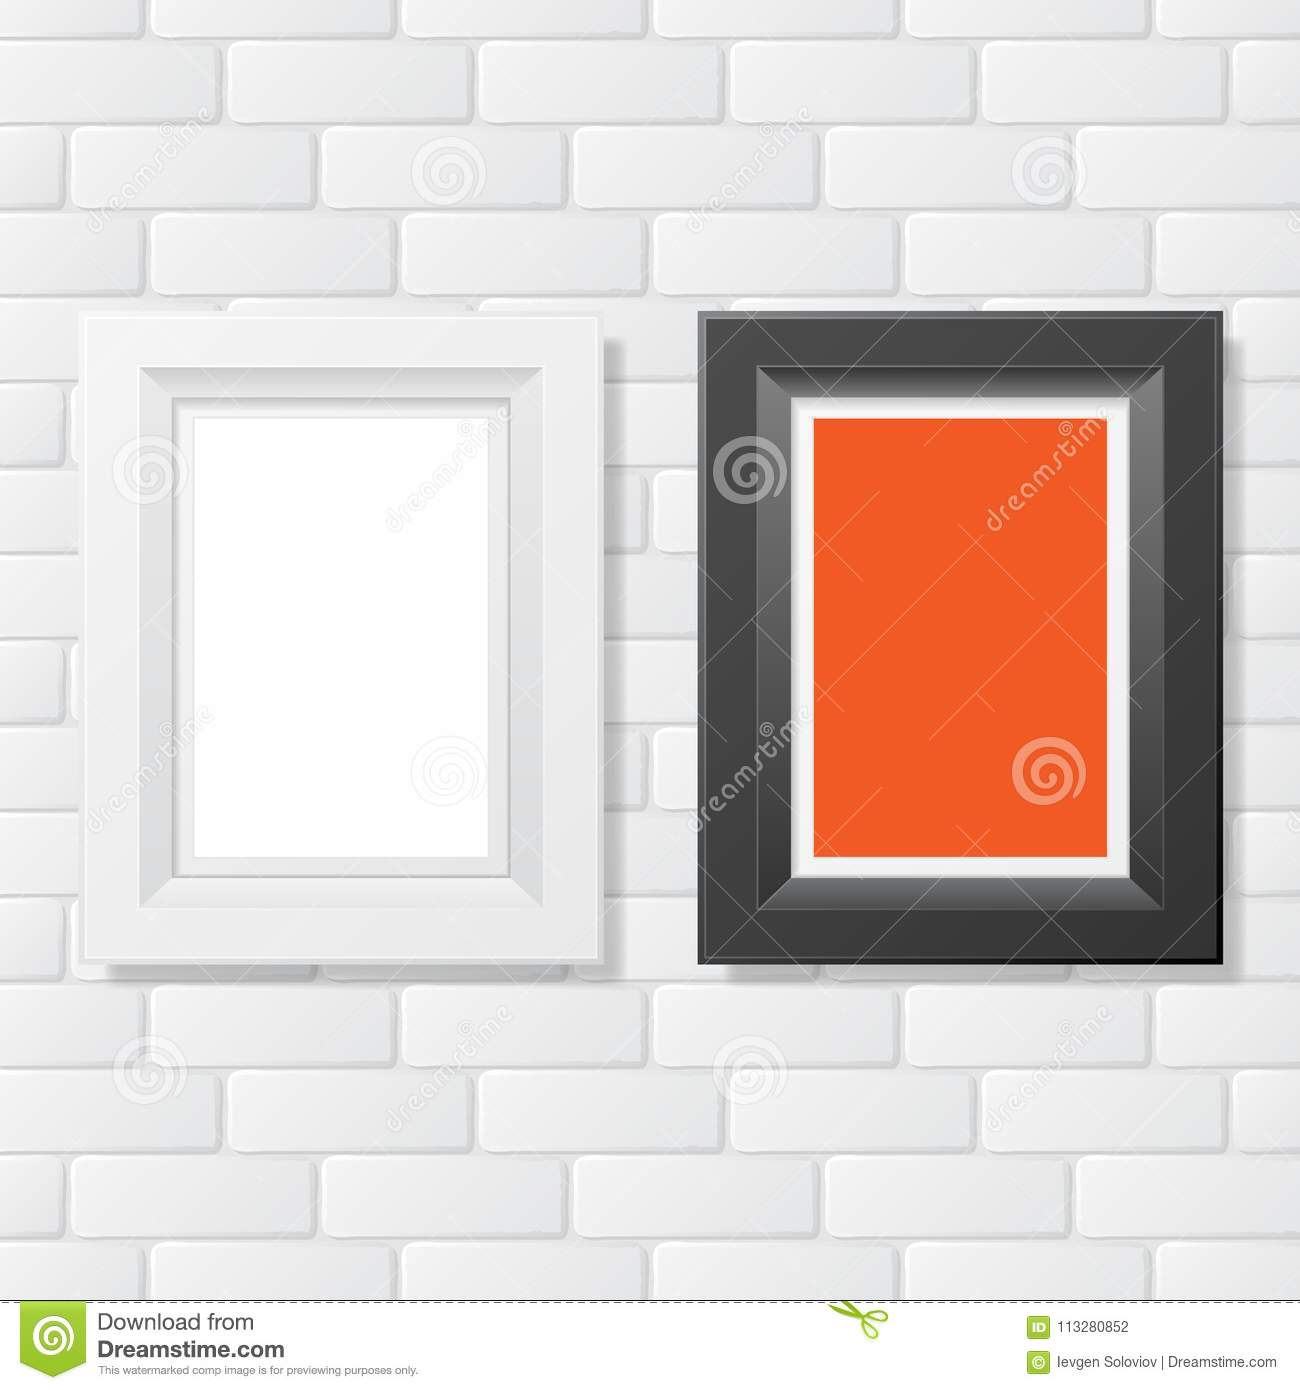 Two picture frames brick stock vector. Illustration of feature ...